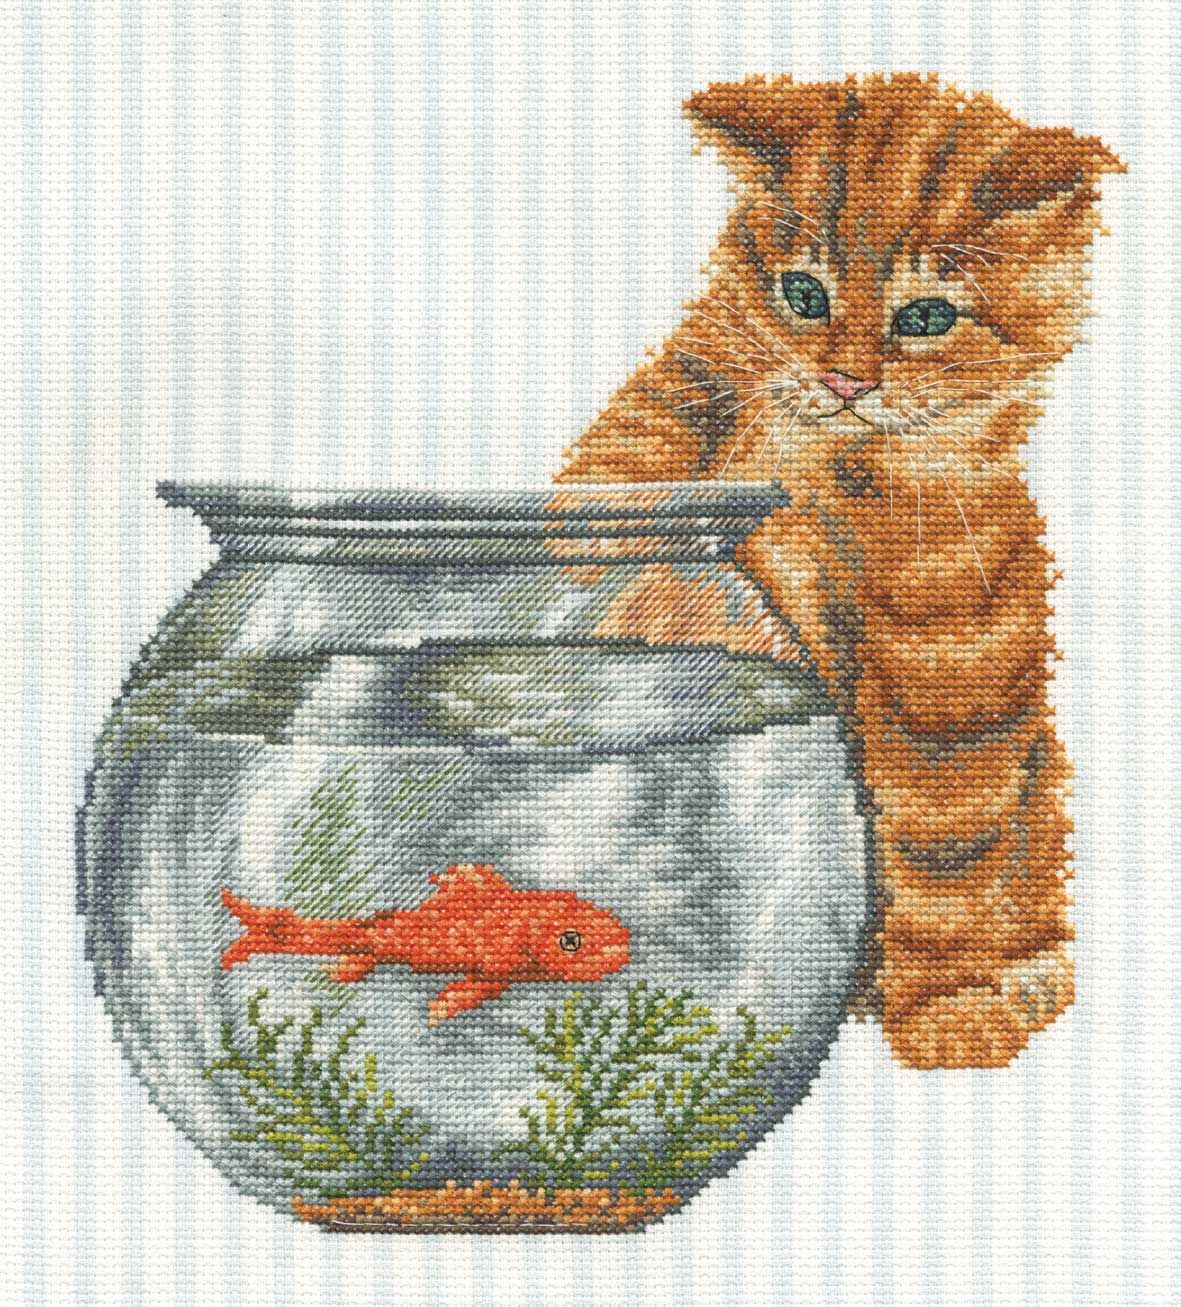 Cat And Goldfish Cats Bk669 21 99 Buy Now Cats Chorus